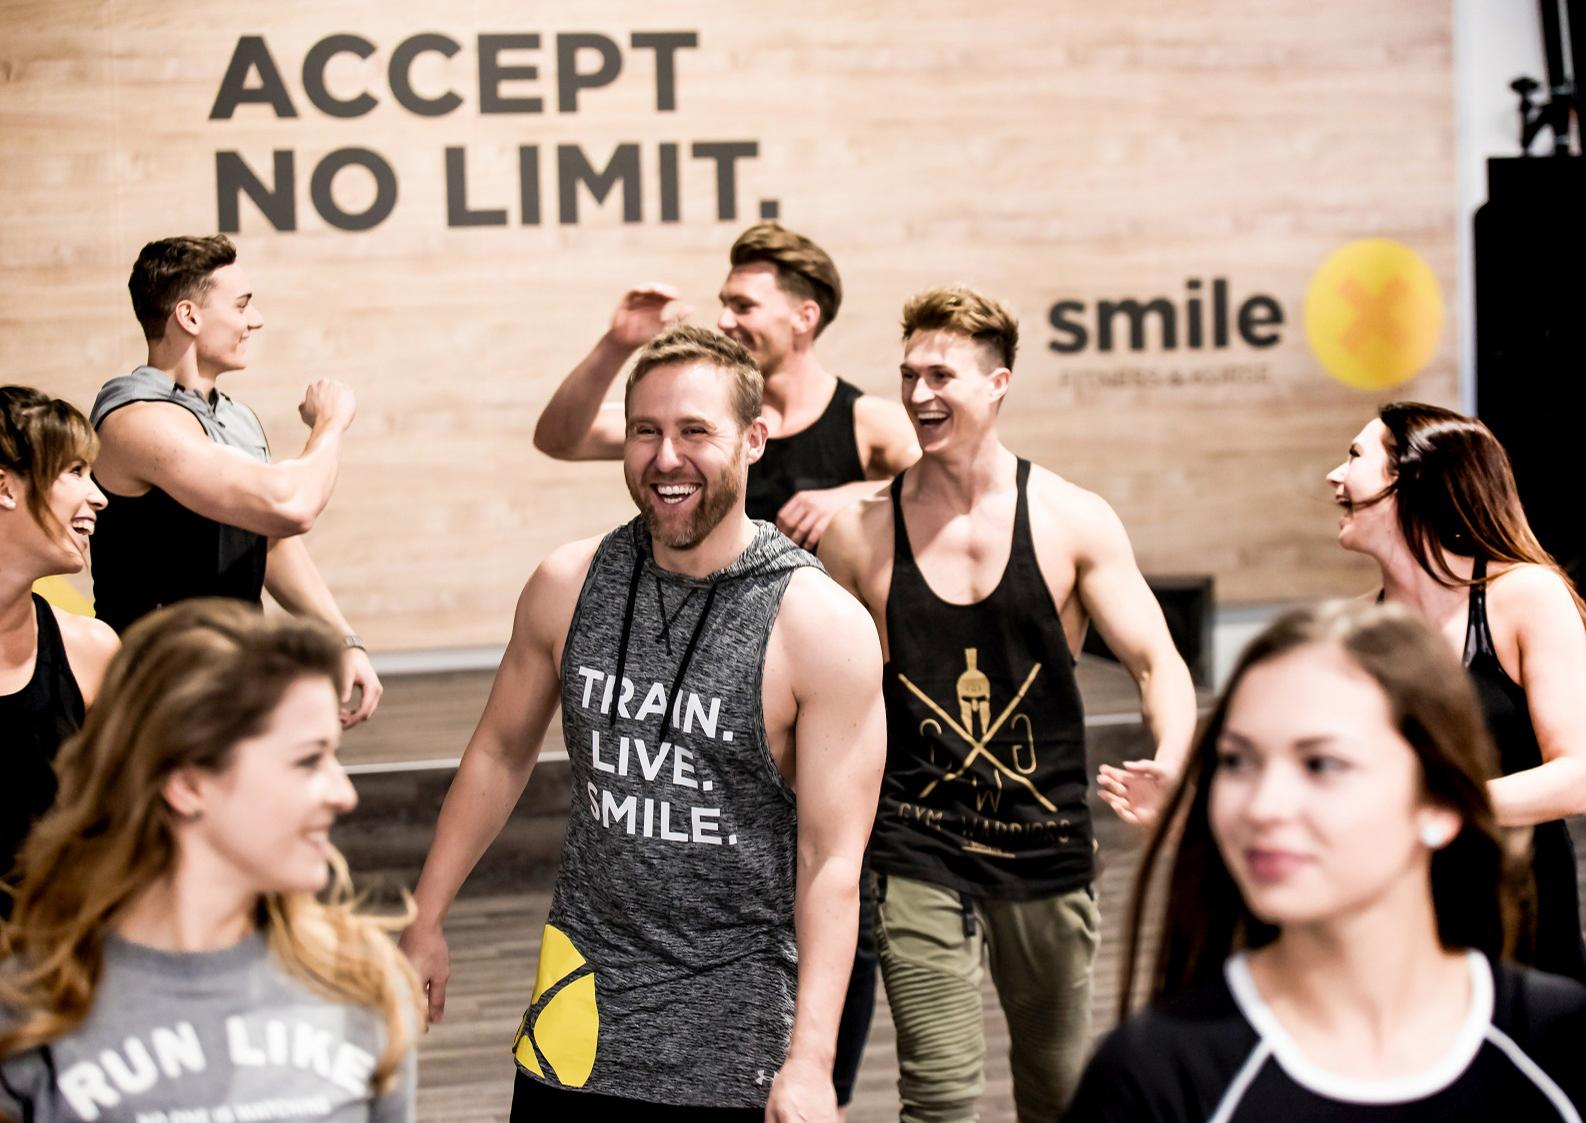 The move is part of the group's plans to expand the Smile X brand in southwest Germany / Smile X